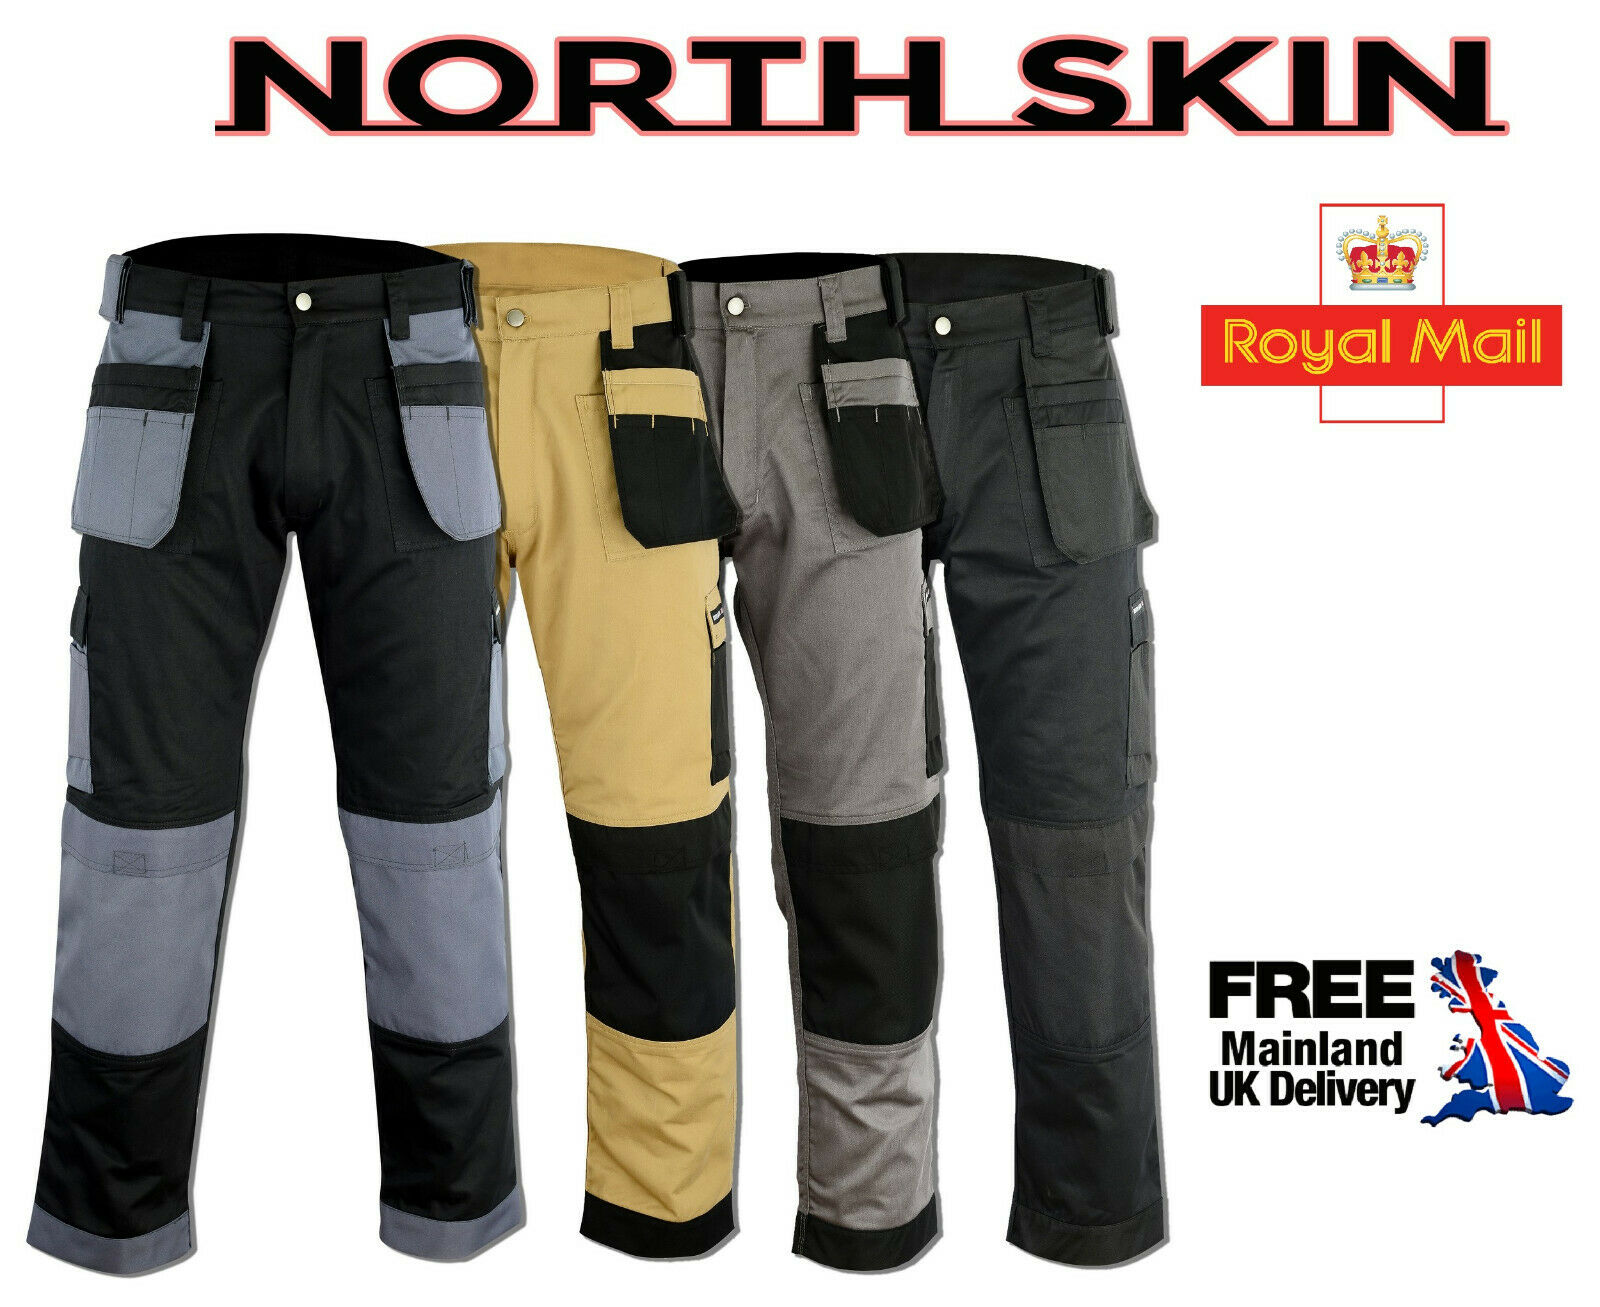 `Combat Cargo Trouser Multi Pockets Tools Holder Pouches Knee Pads Pockets Pant